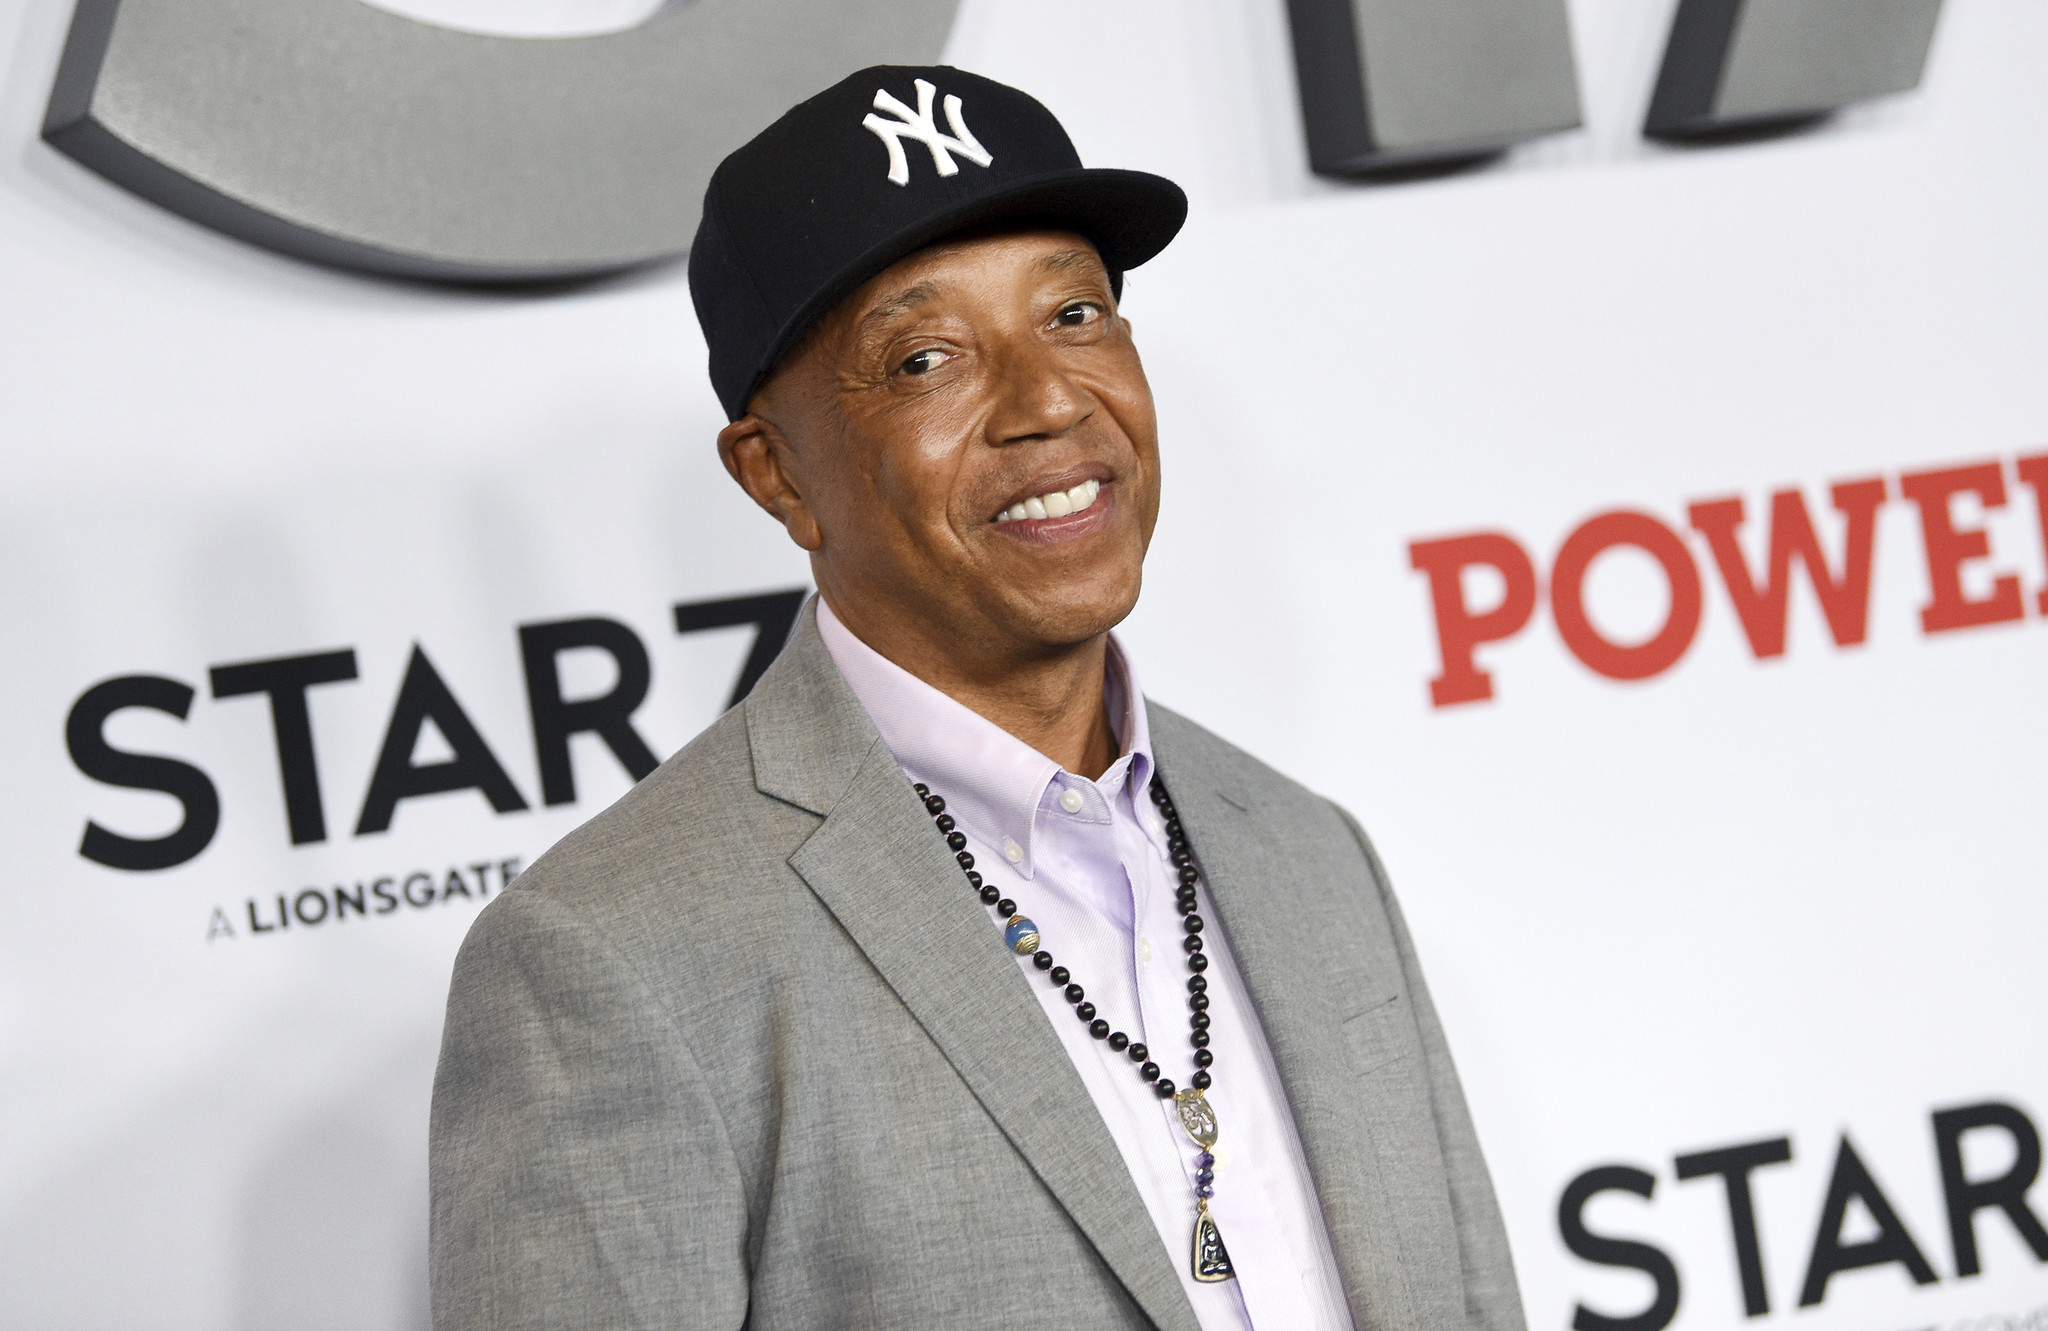 In line with his plant-based lifestyle, Russell Simmons spread 'eating animal' coronavirus theories on social media